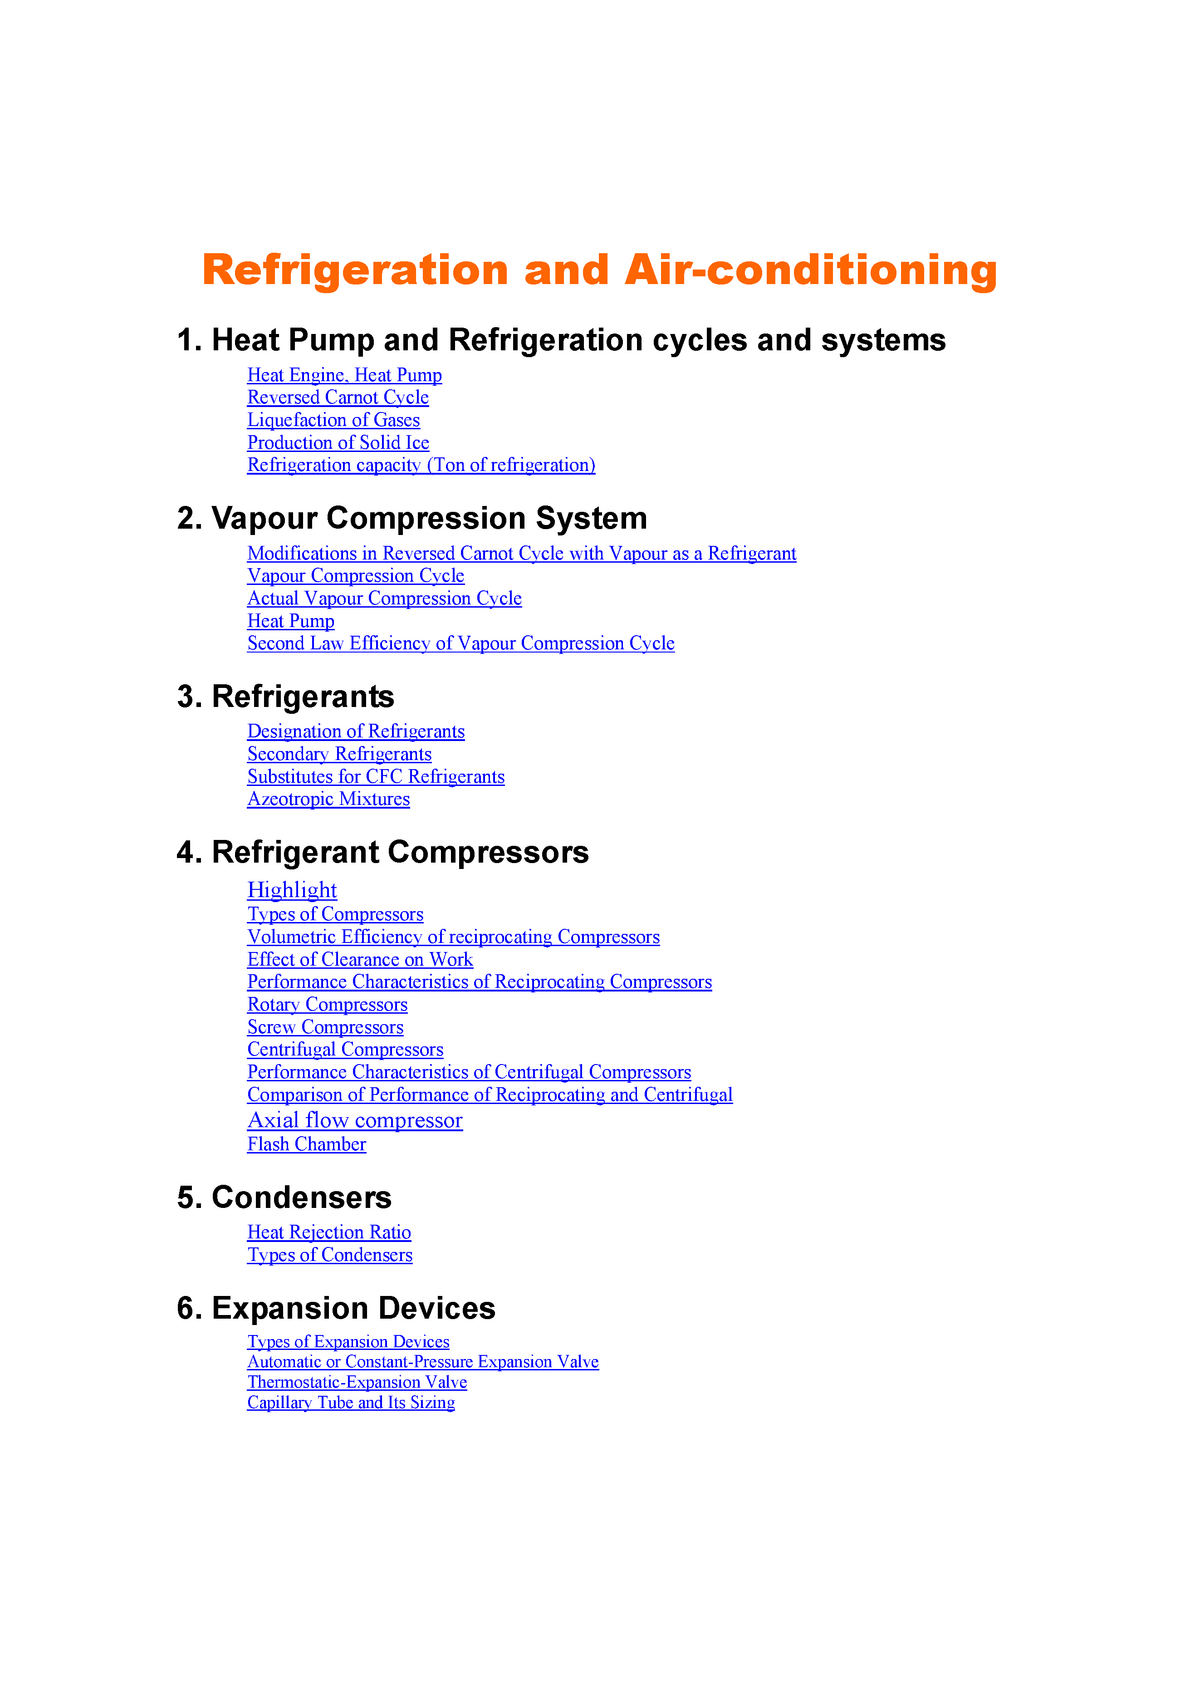 Refrigeration and Air-Conditioning - S K Mondal - AEC302